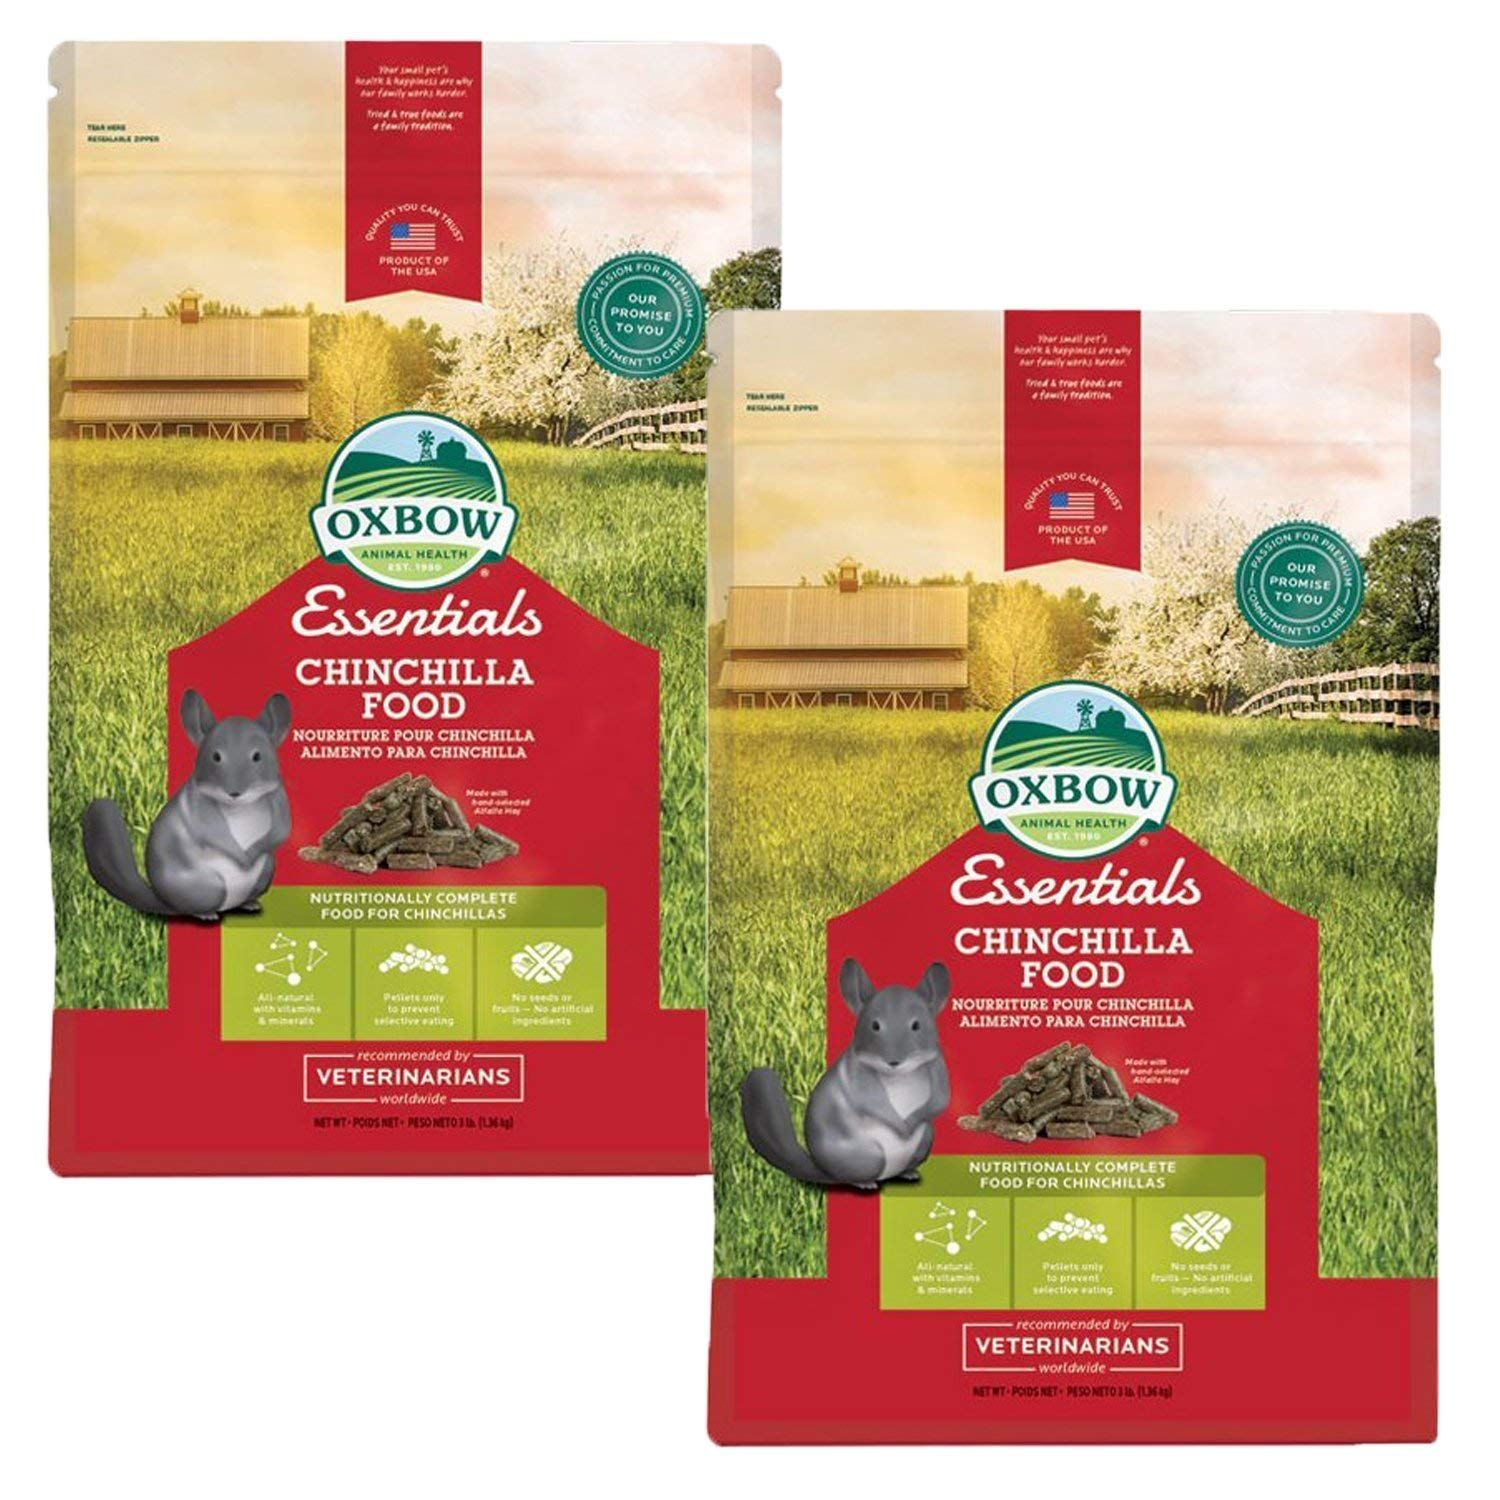 Oxbow essentials chinchilla 3lb 2 pack review more